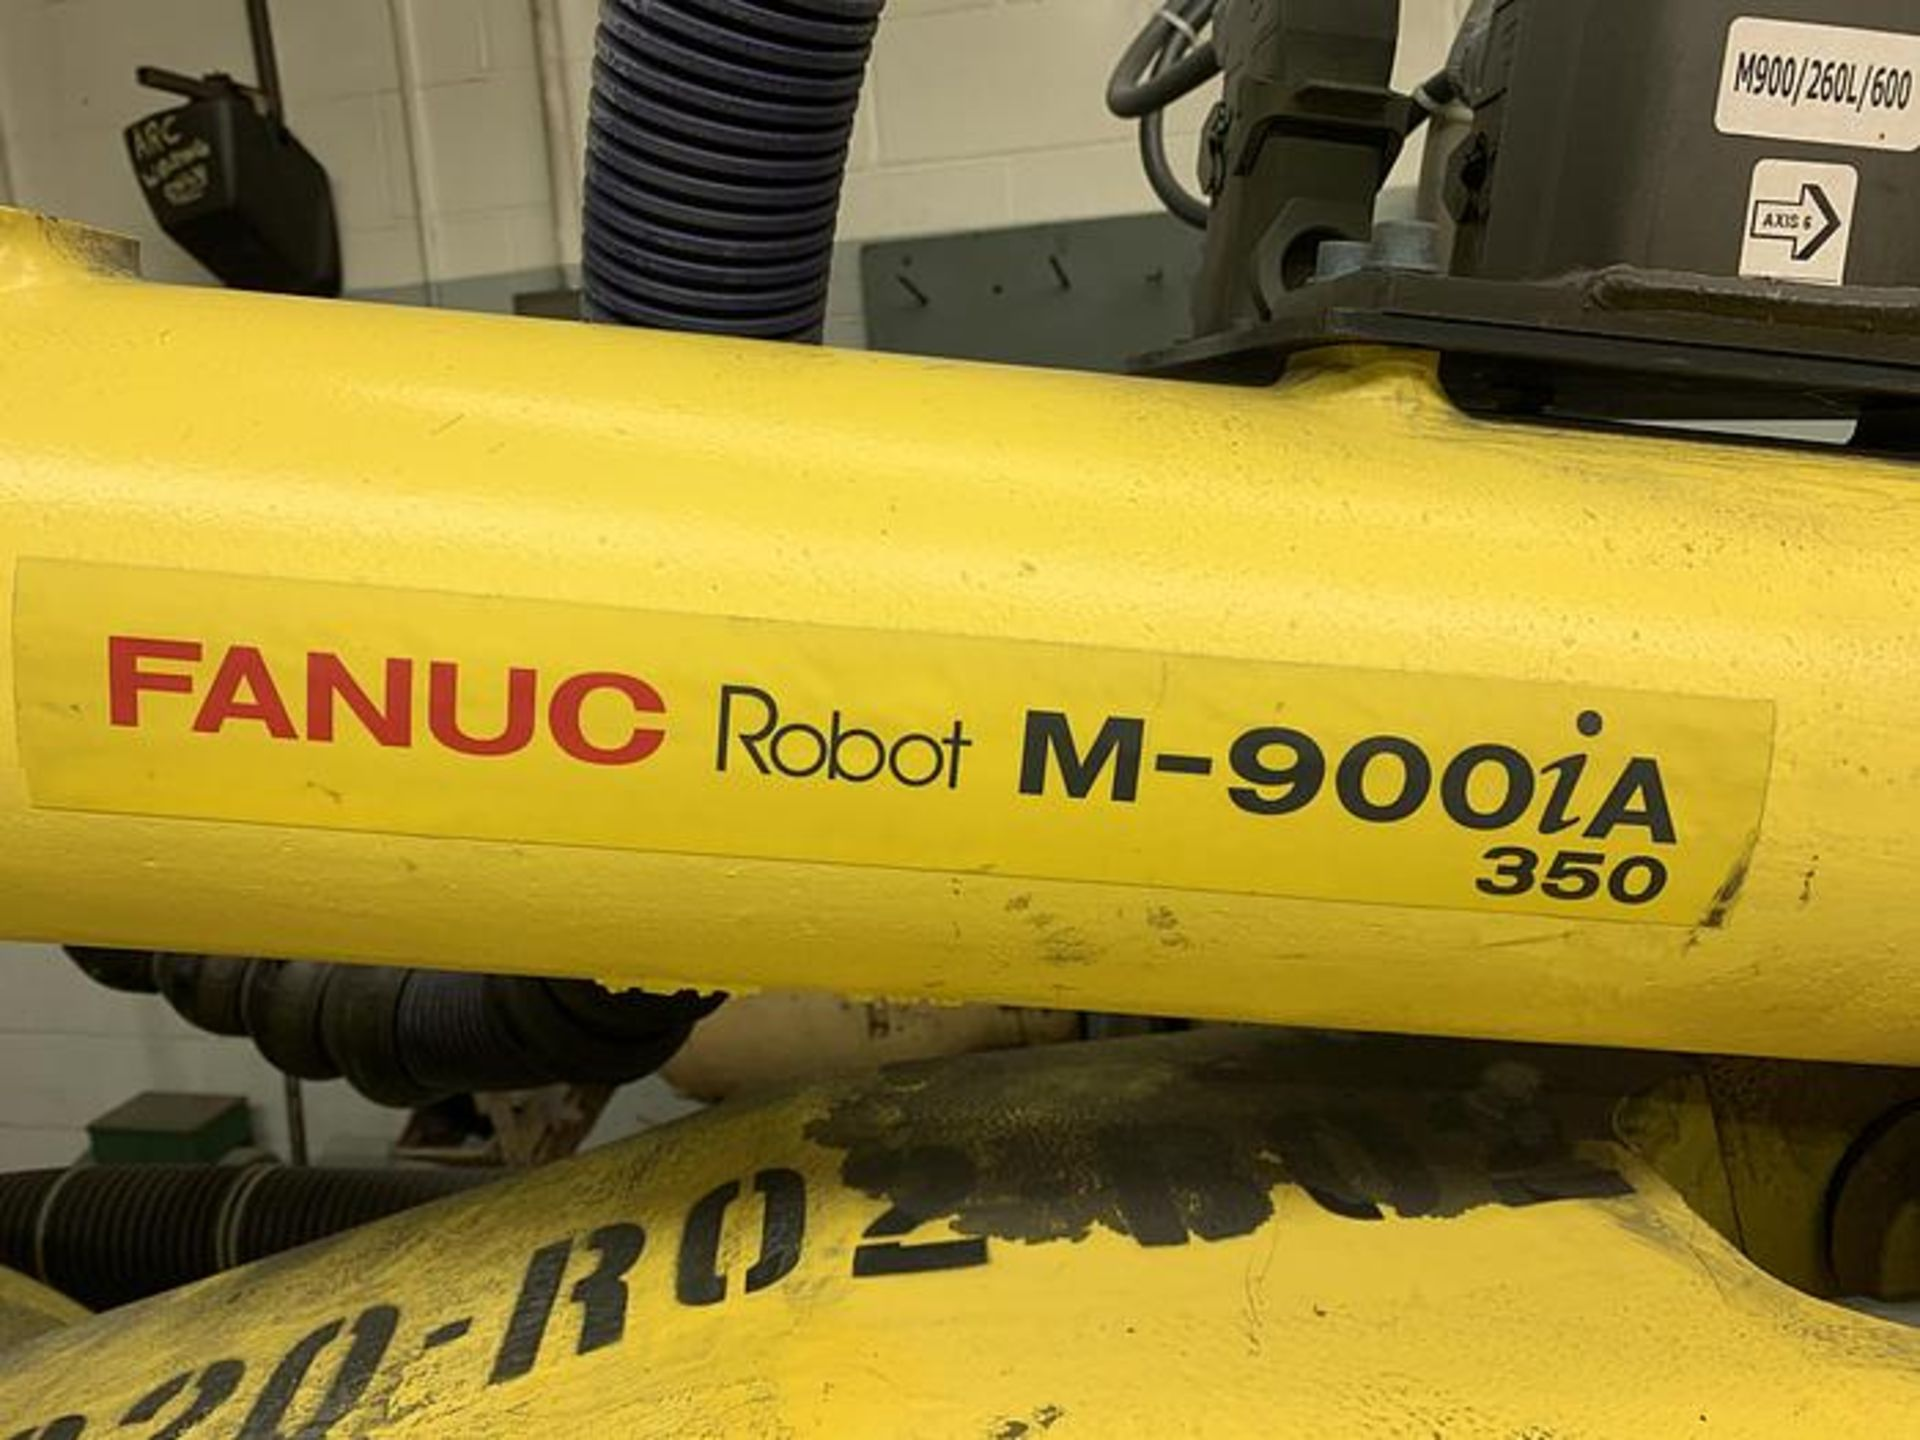 FANUC M900iA/350 6 AXIS ROBOT WITH R30iA CONTROLLER MACHINE, CABLES & TEACH SN F111634, YEAR 2011 - Image 2 of 13